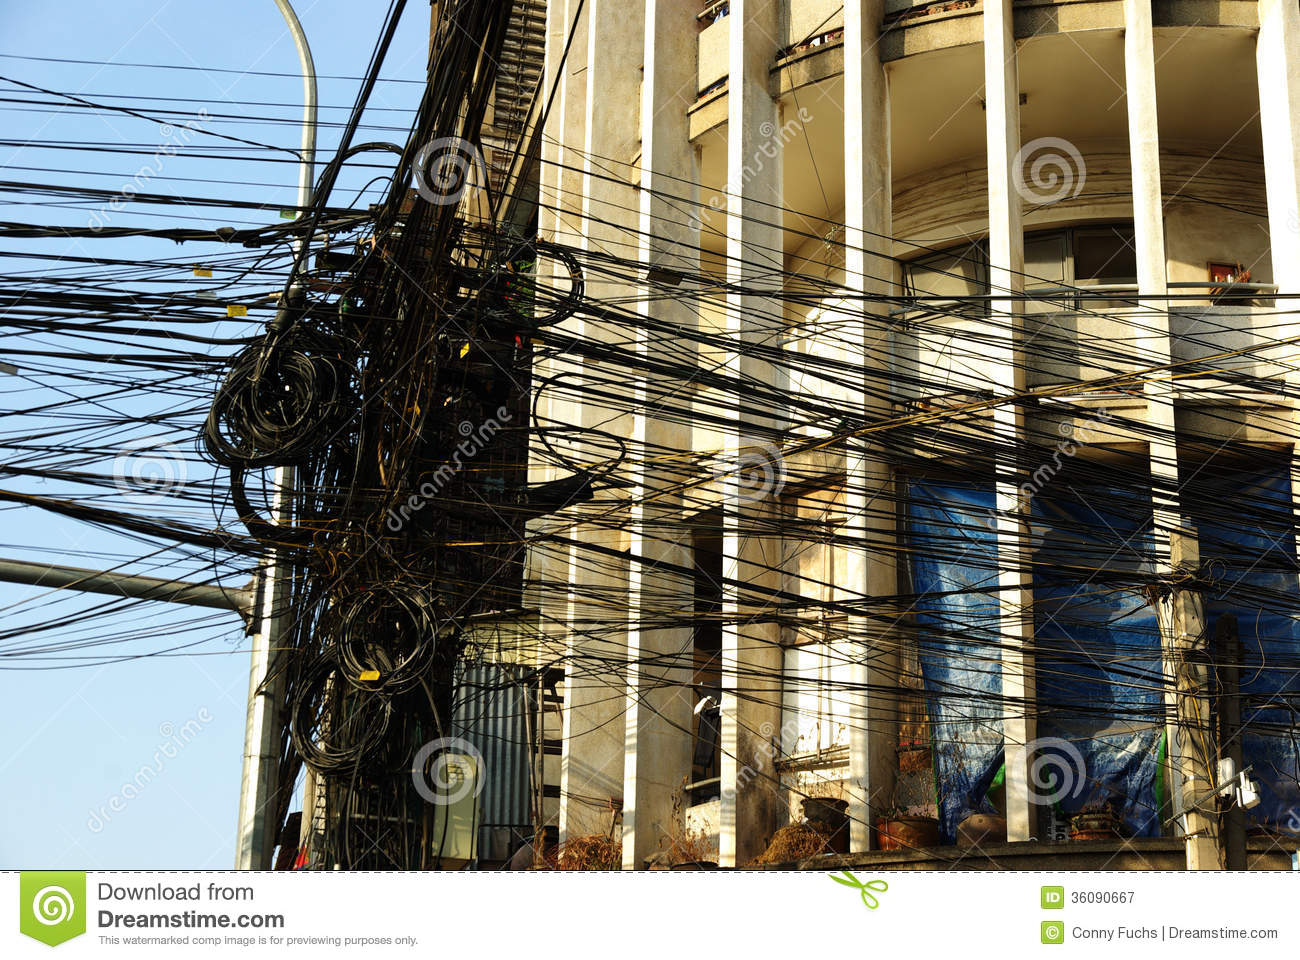 a mass of electric cables in a mess, in front of a house